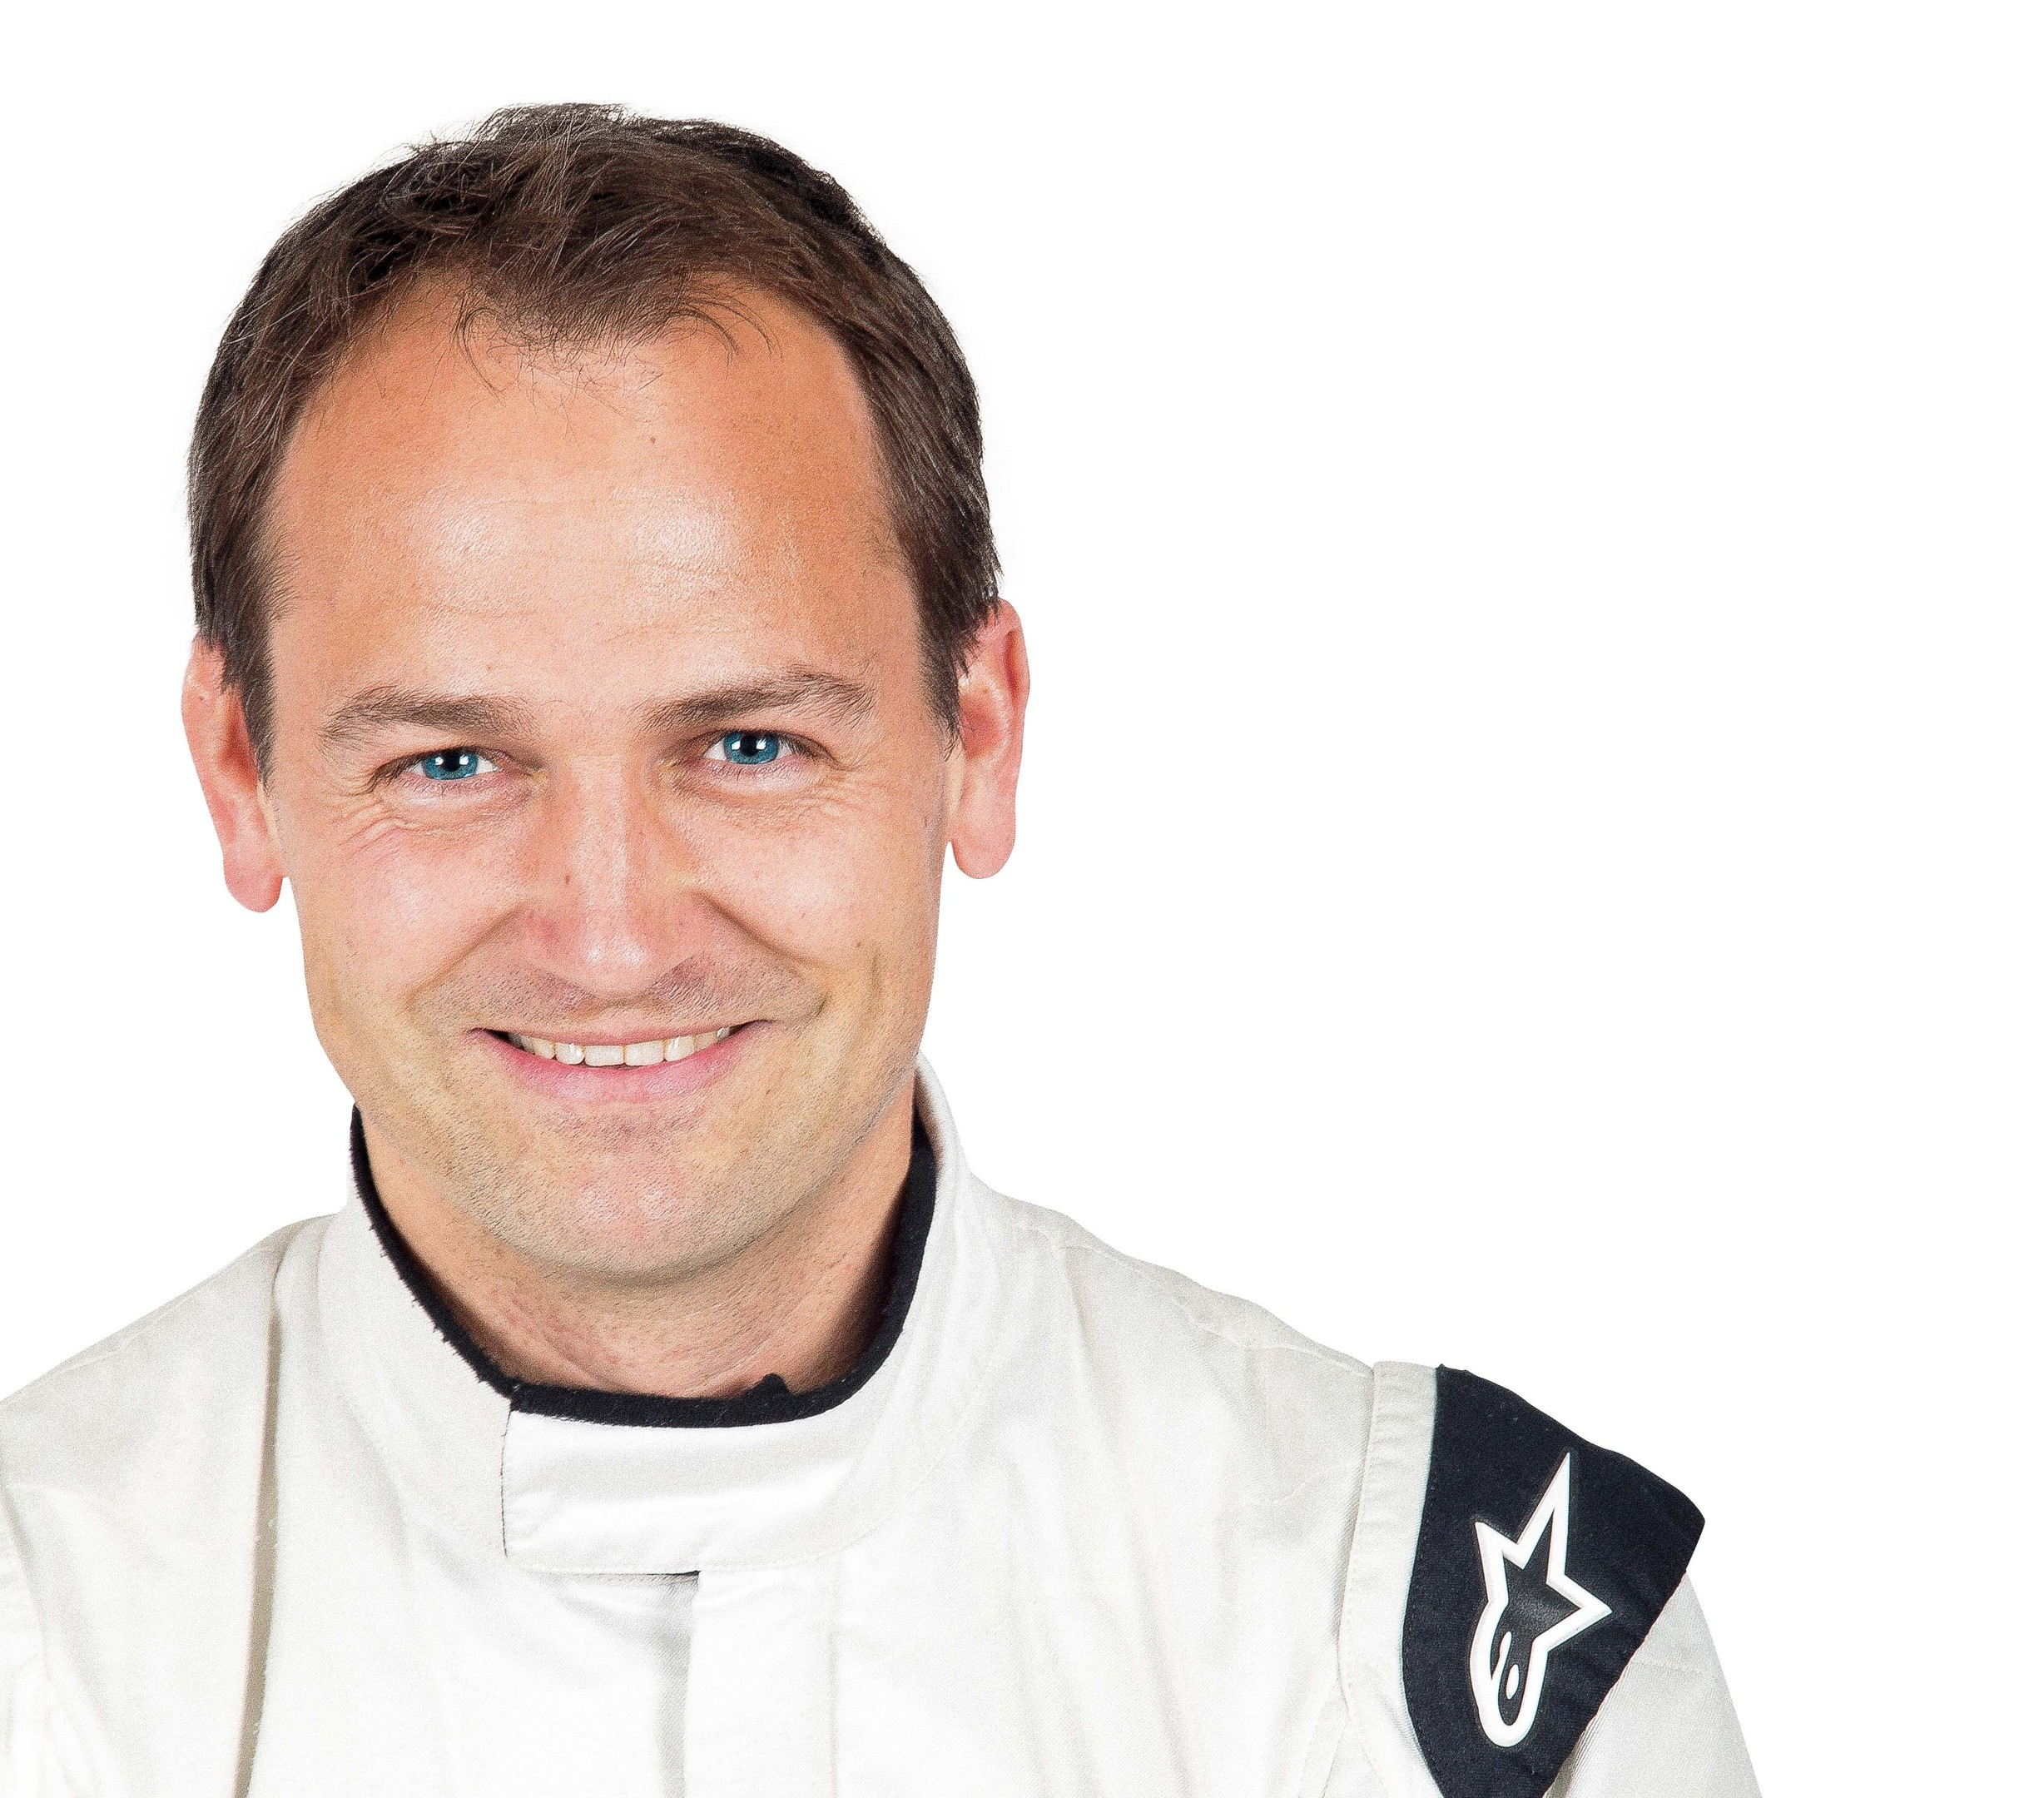 PLAYLIST: Top Gear's Ben Collins (aka The Stig) shares his driving